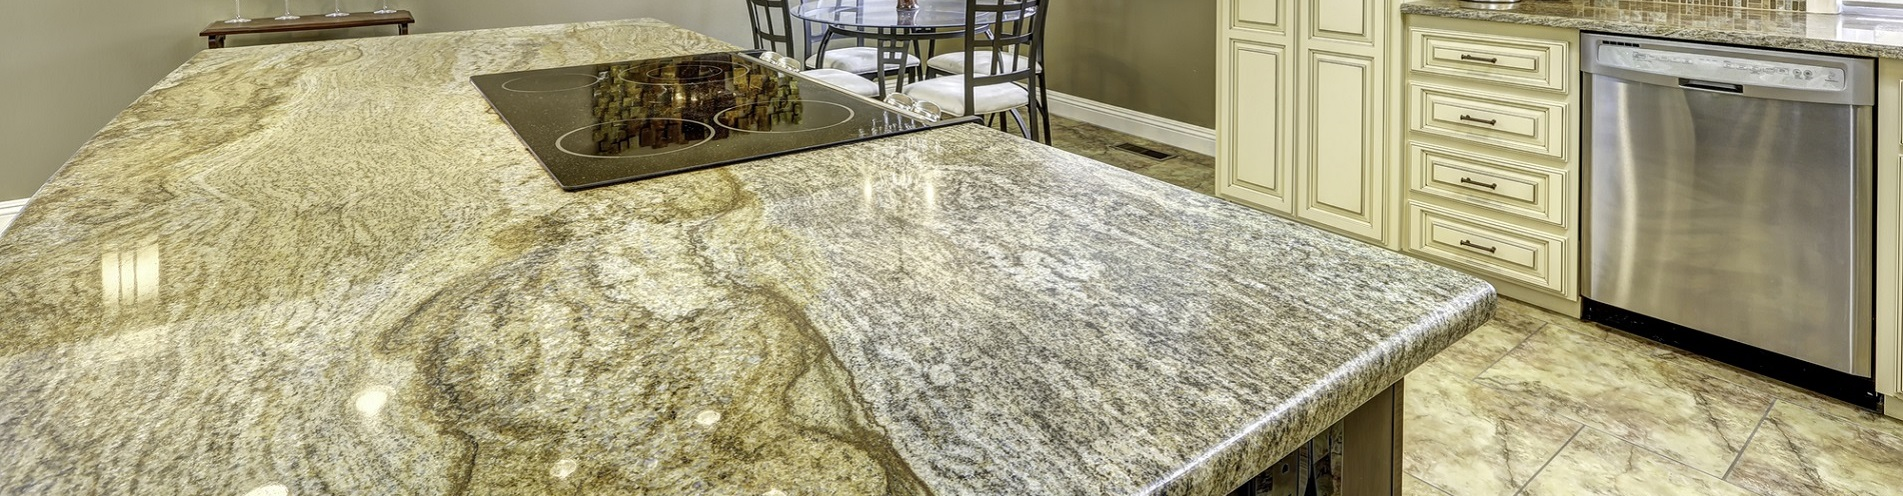 Granite Countertops Utah Intermountain Stone and Marble